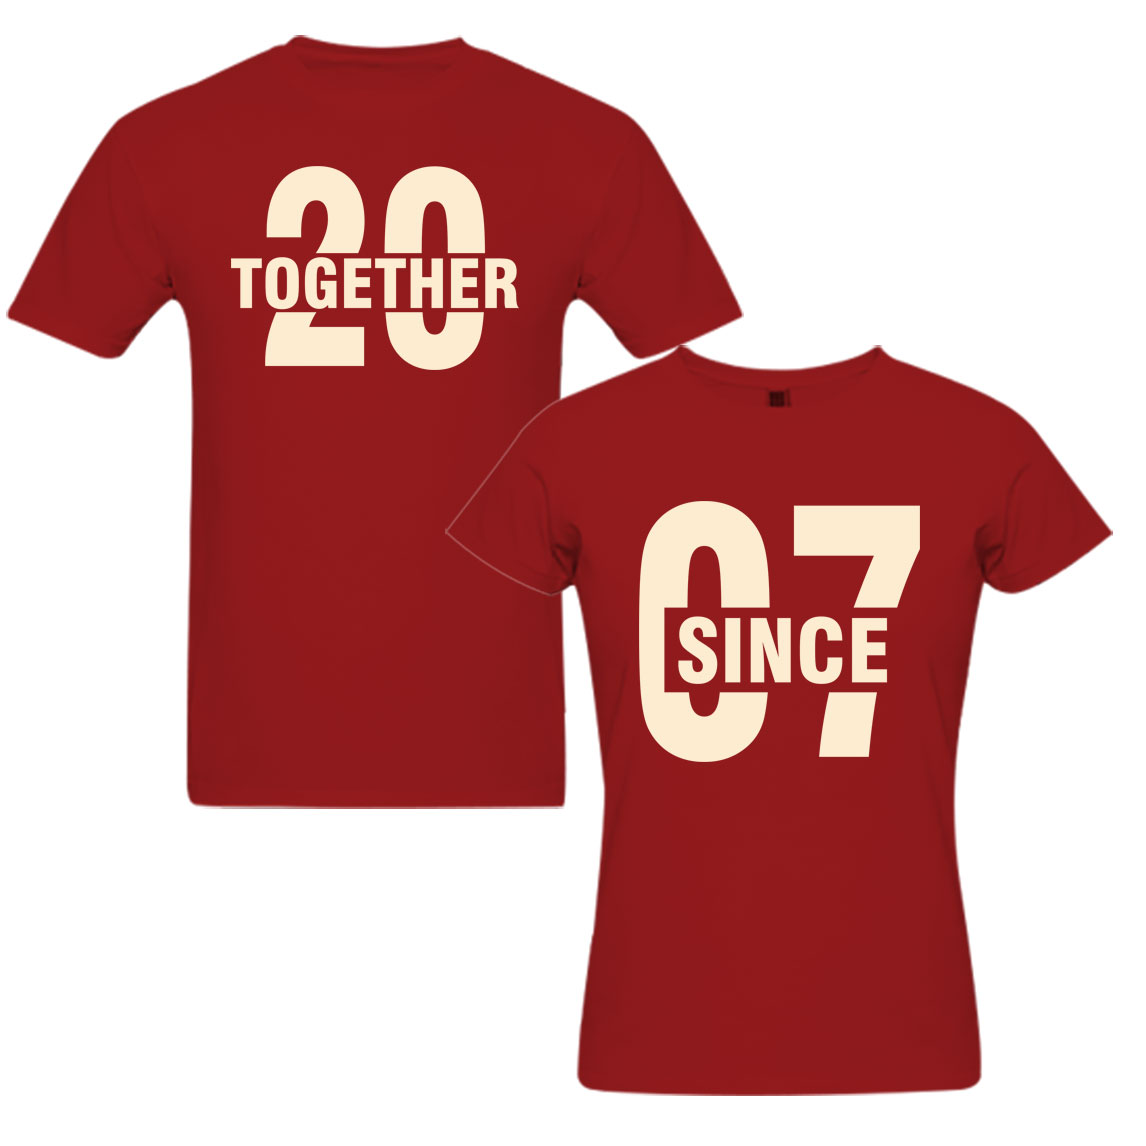 Together since 2007 couple t shirts from pepperclub india for Couple printed t shirts india